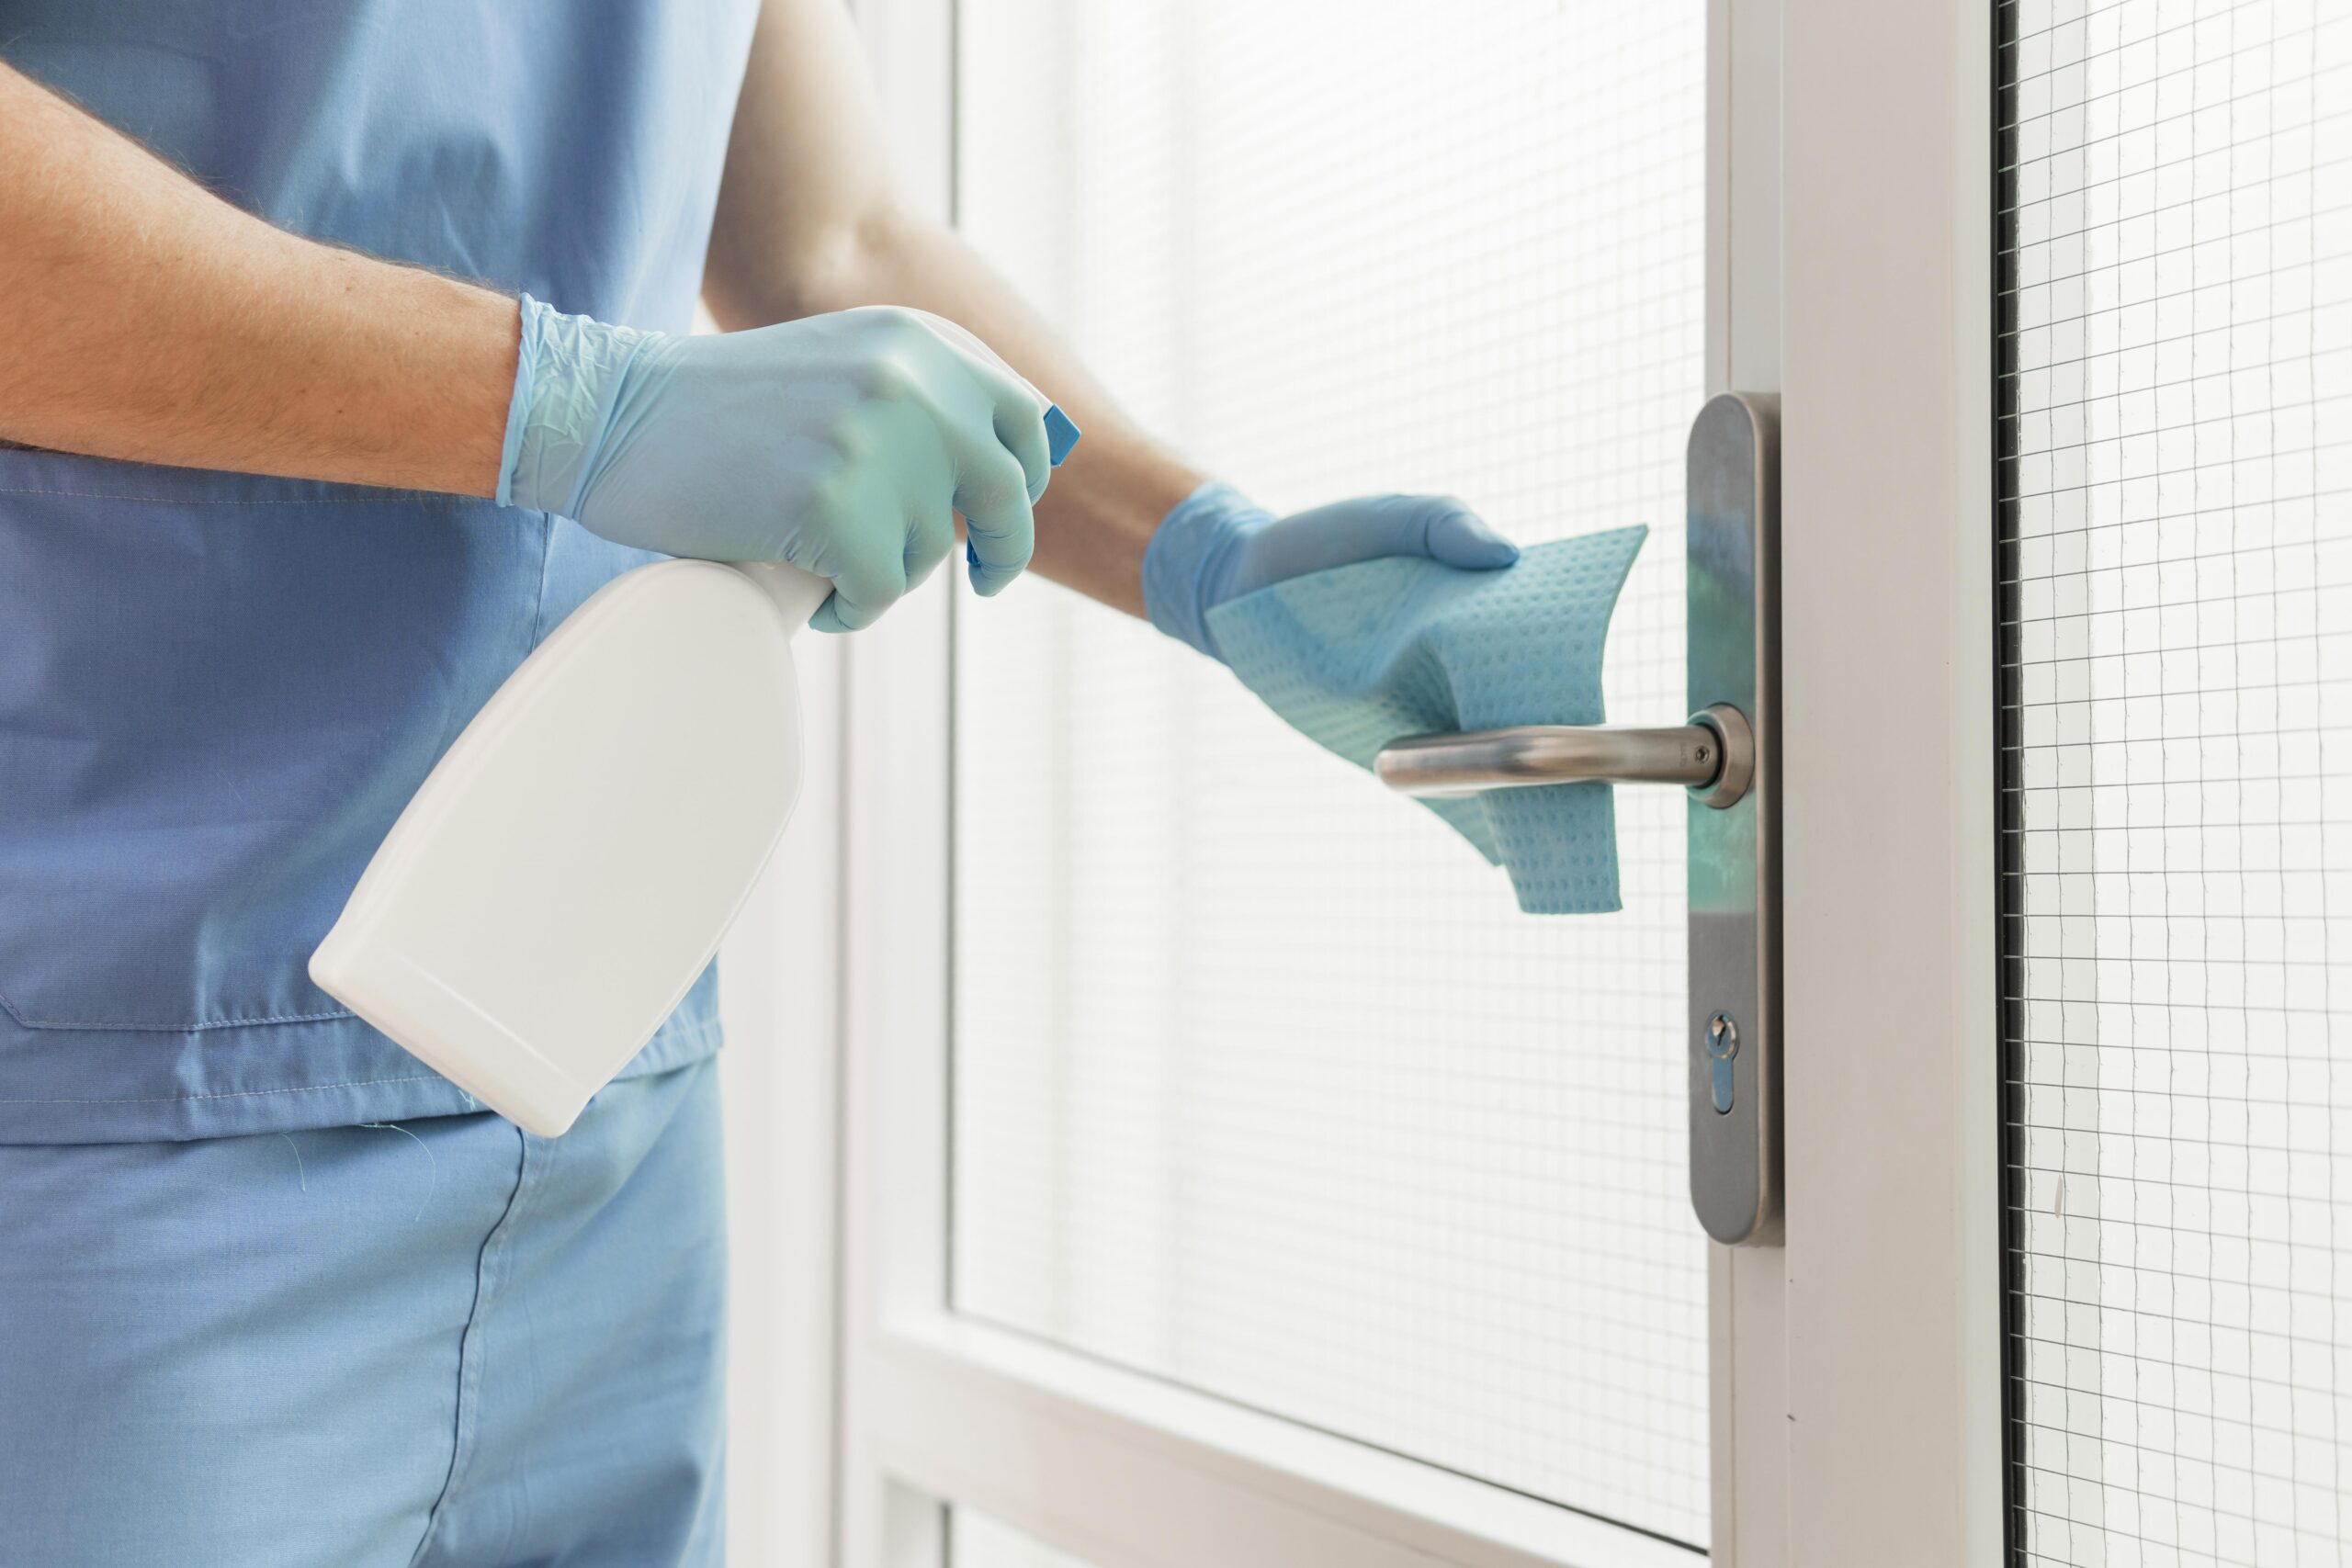 Why The New Normal Demands Beyond-Normal Cleaning And Disinfection